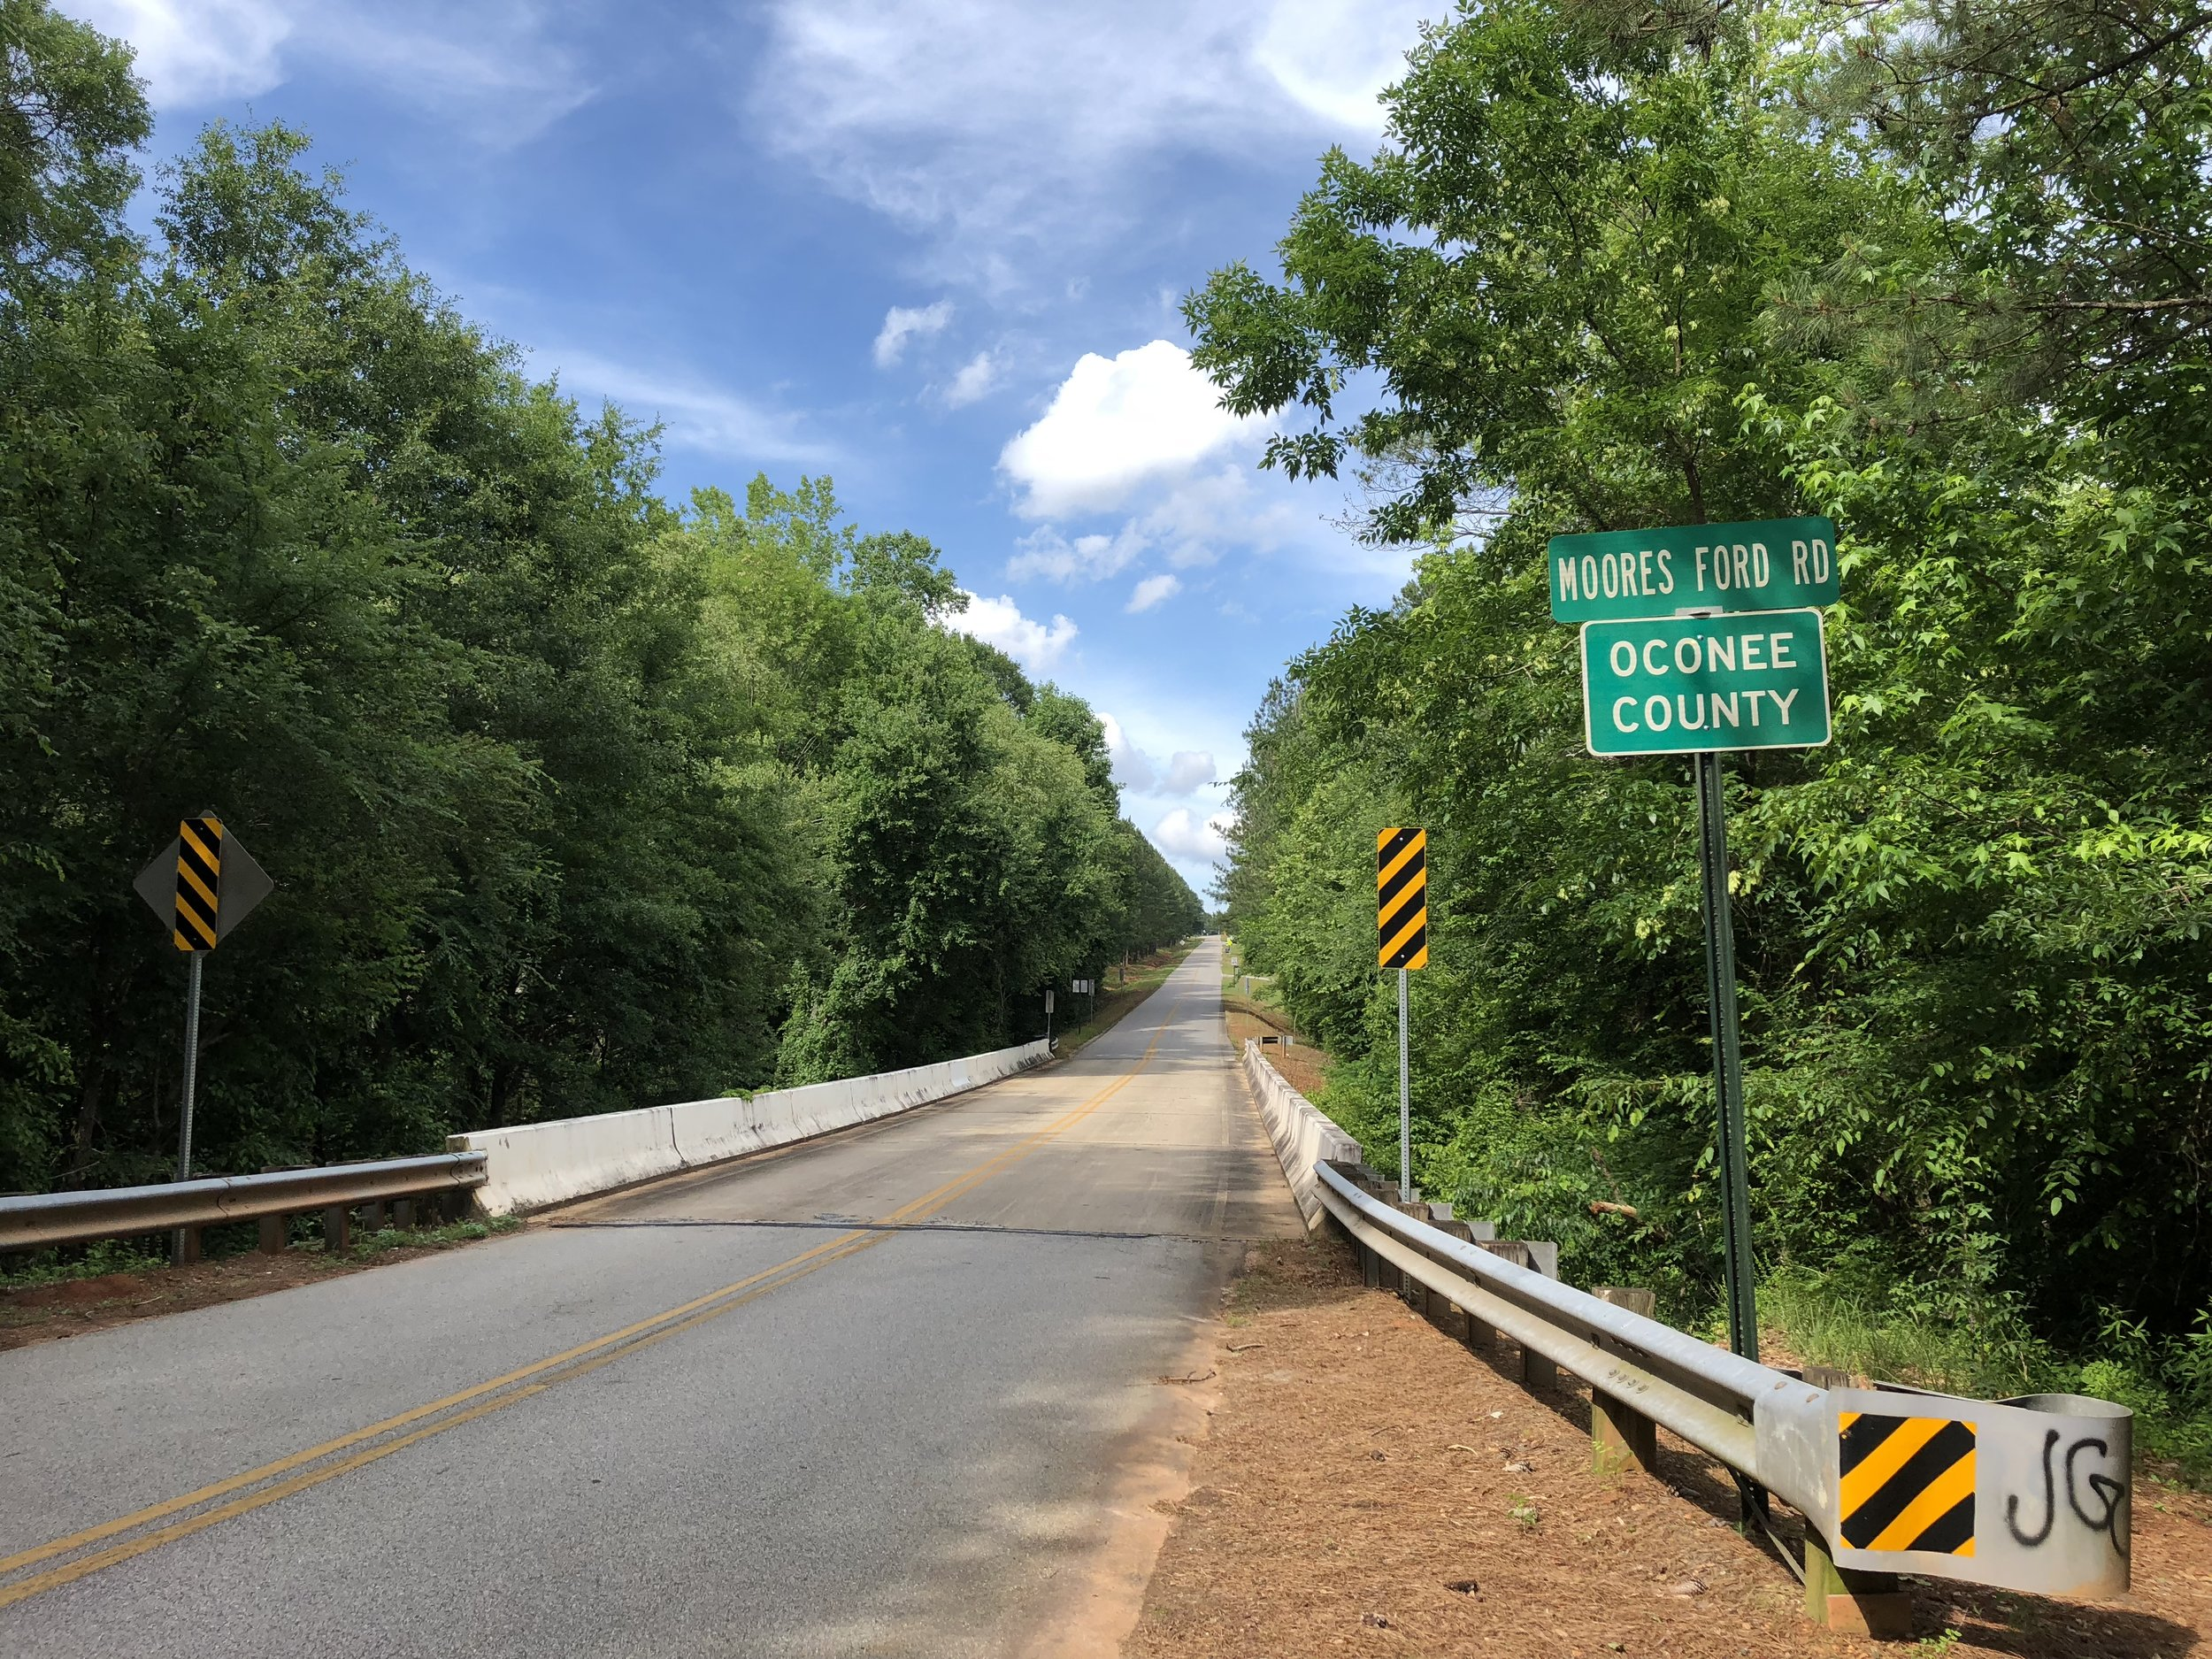 Moore's Ford Bridge, the location of the last mass lynching in the United States. Victims were taken from the car of Loy Harrison before crossing this bridge. They where brutally shot and killed beside this bridge by a lynch mob.